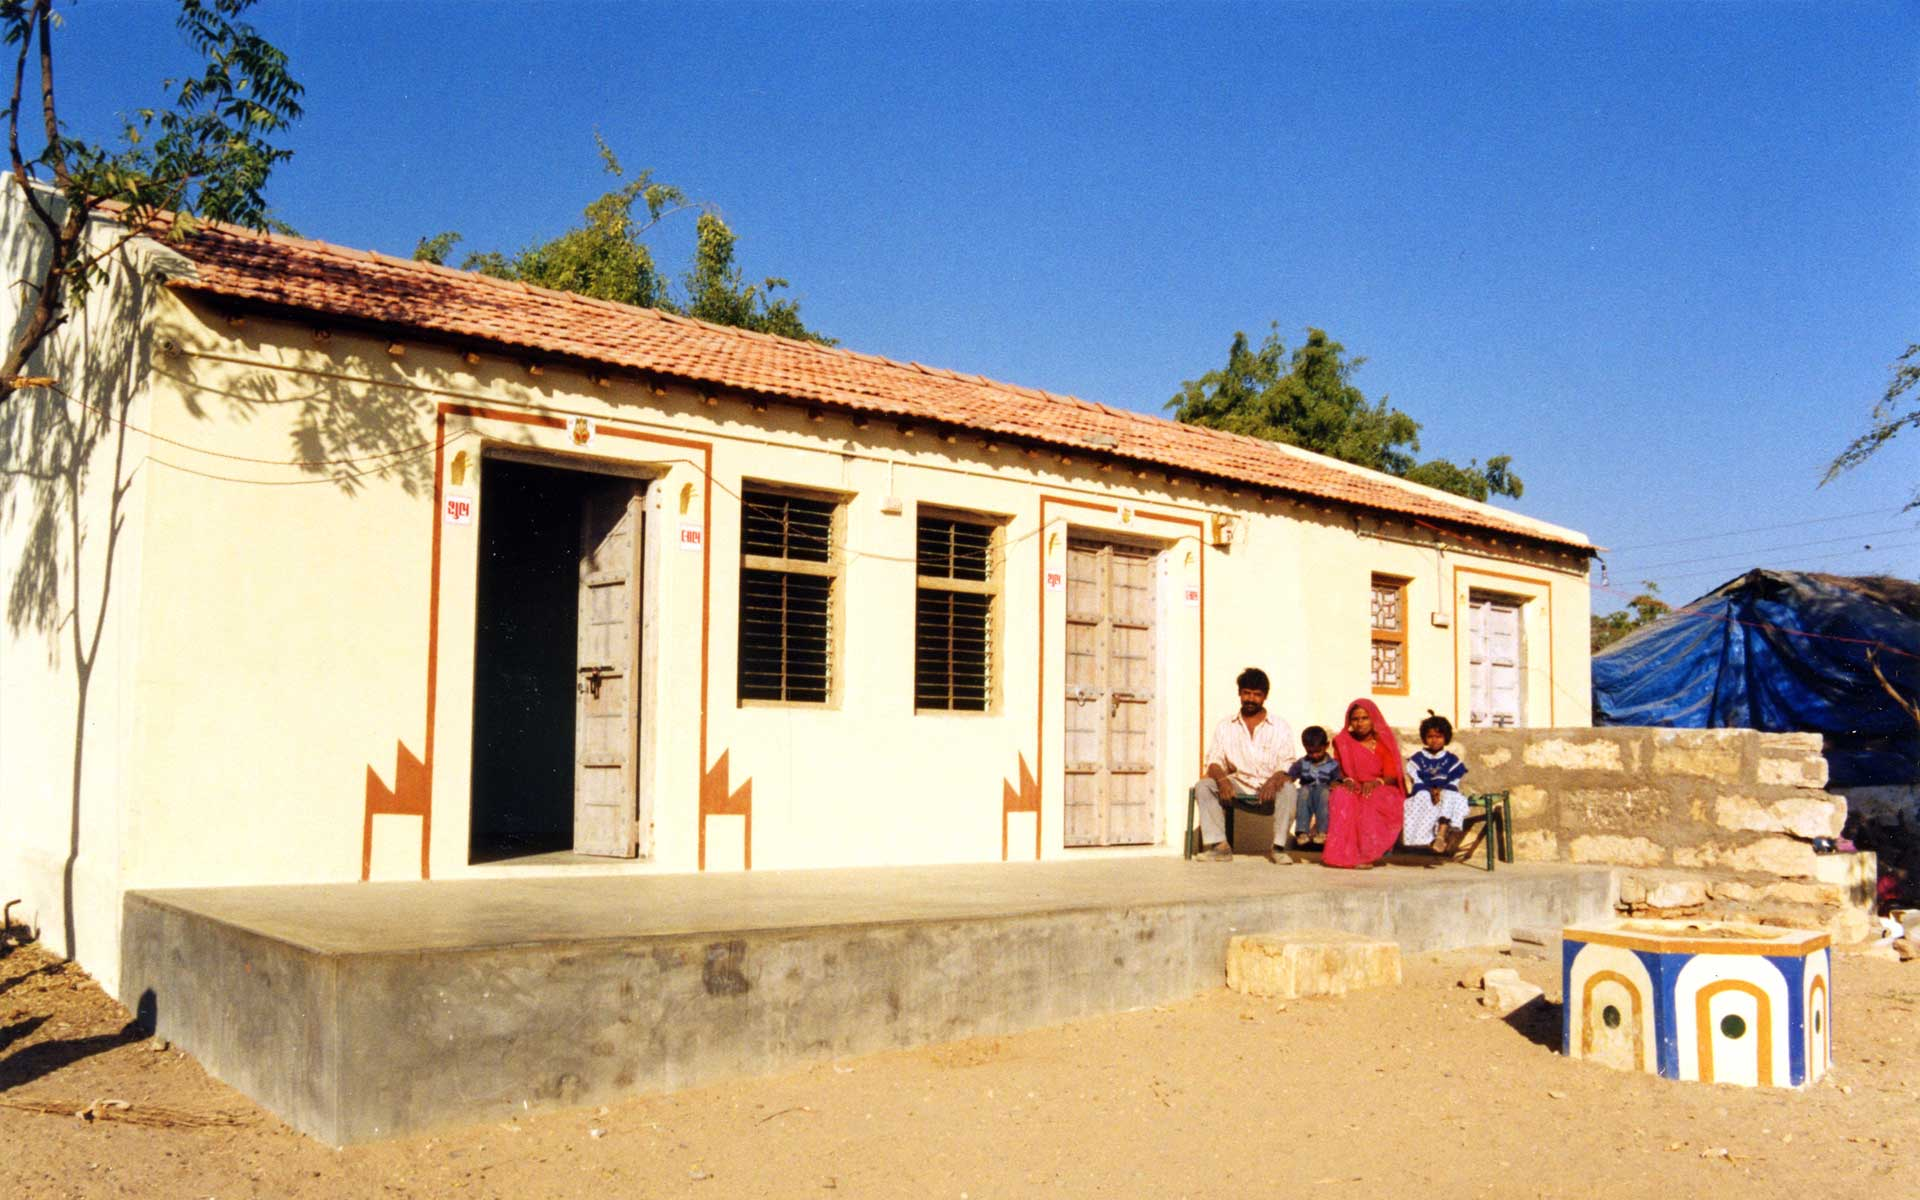 One of the homes in the Bhadli Village with a family sitting in front of it